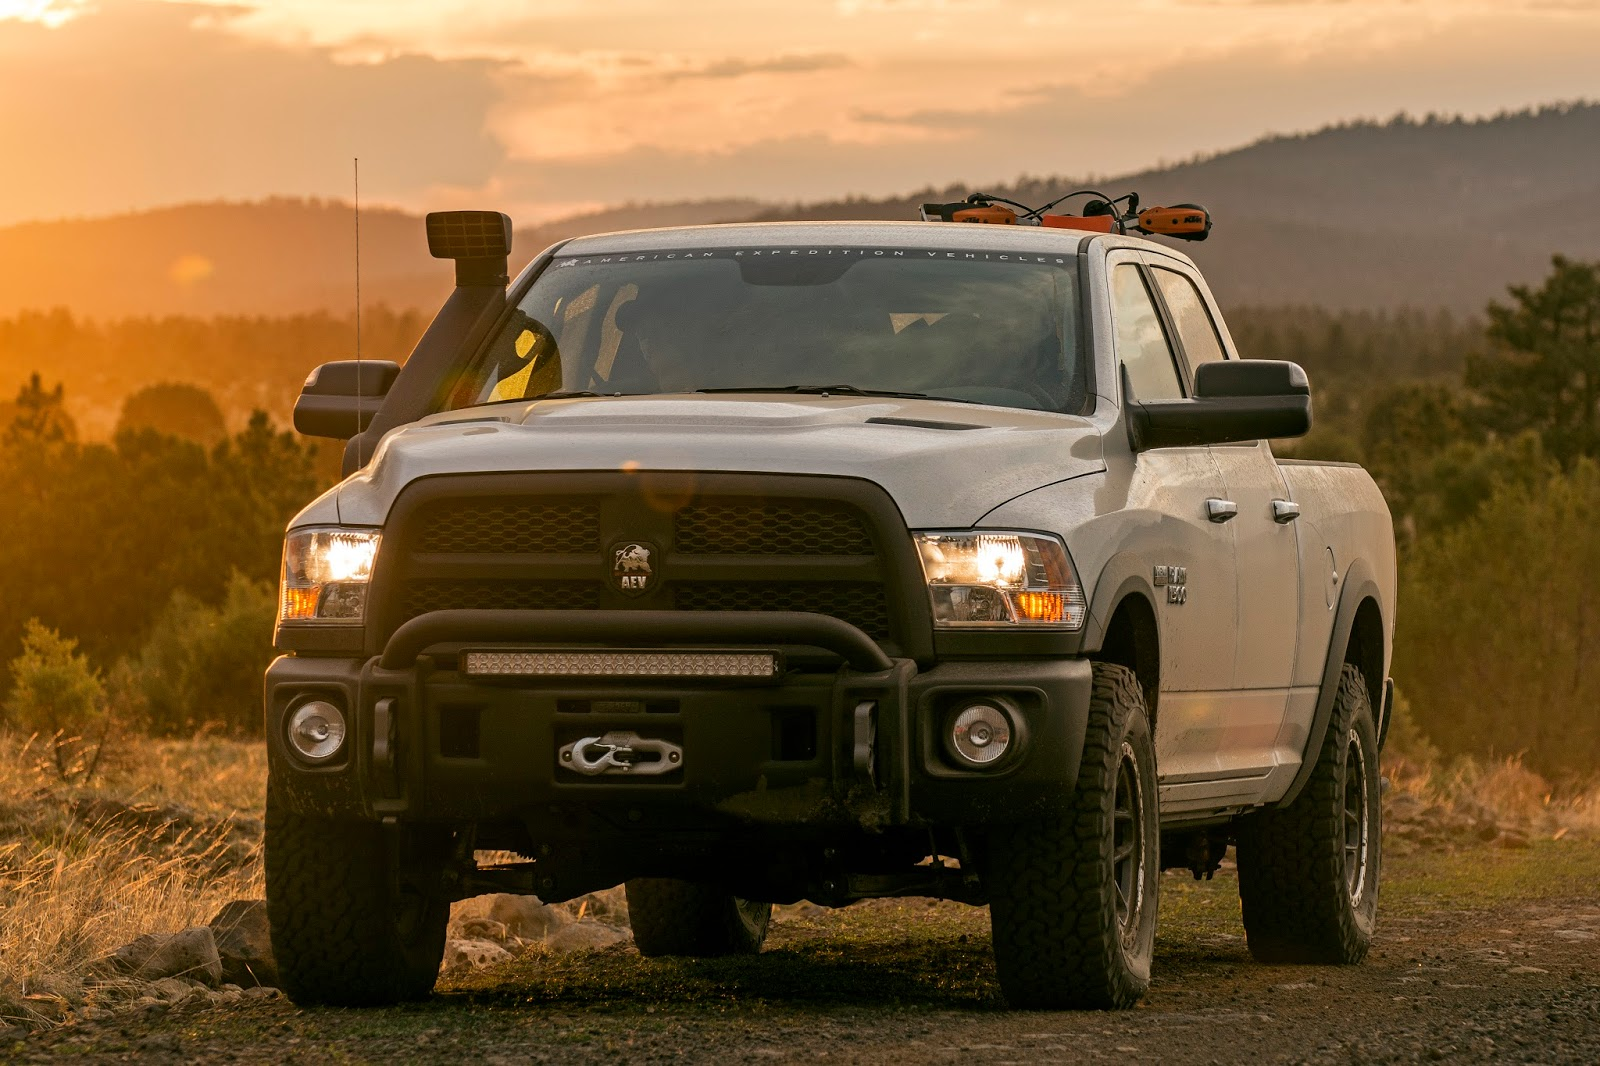 American Expedition Vehicles >> American Expedition Vehicles Recruit Work Hard Play Hard Er